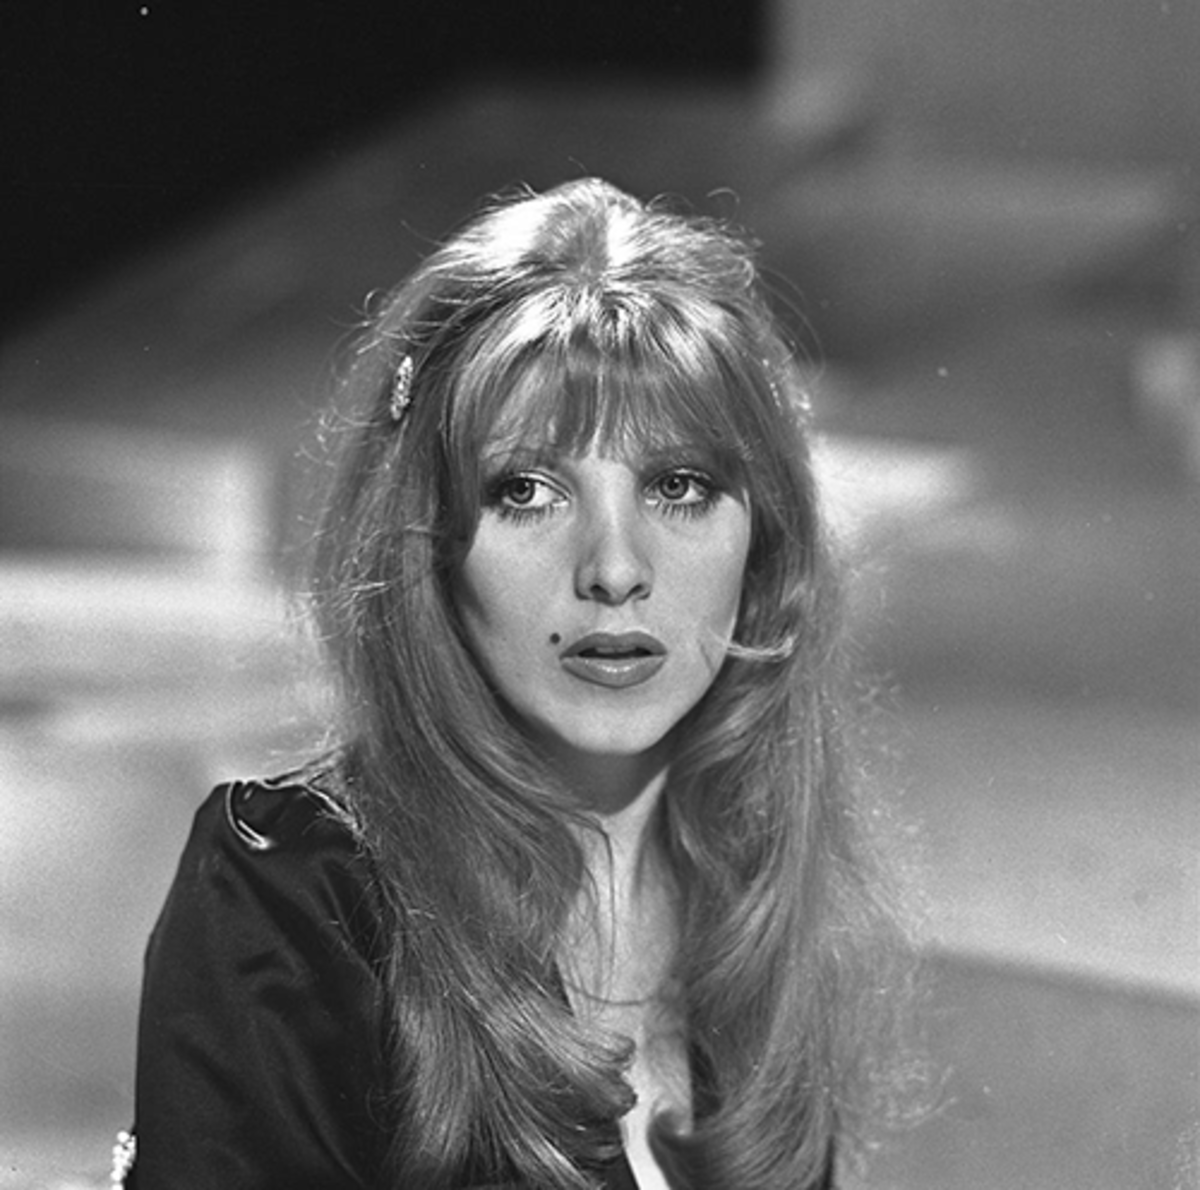 A Tribute to Lynsey de Paul